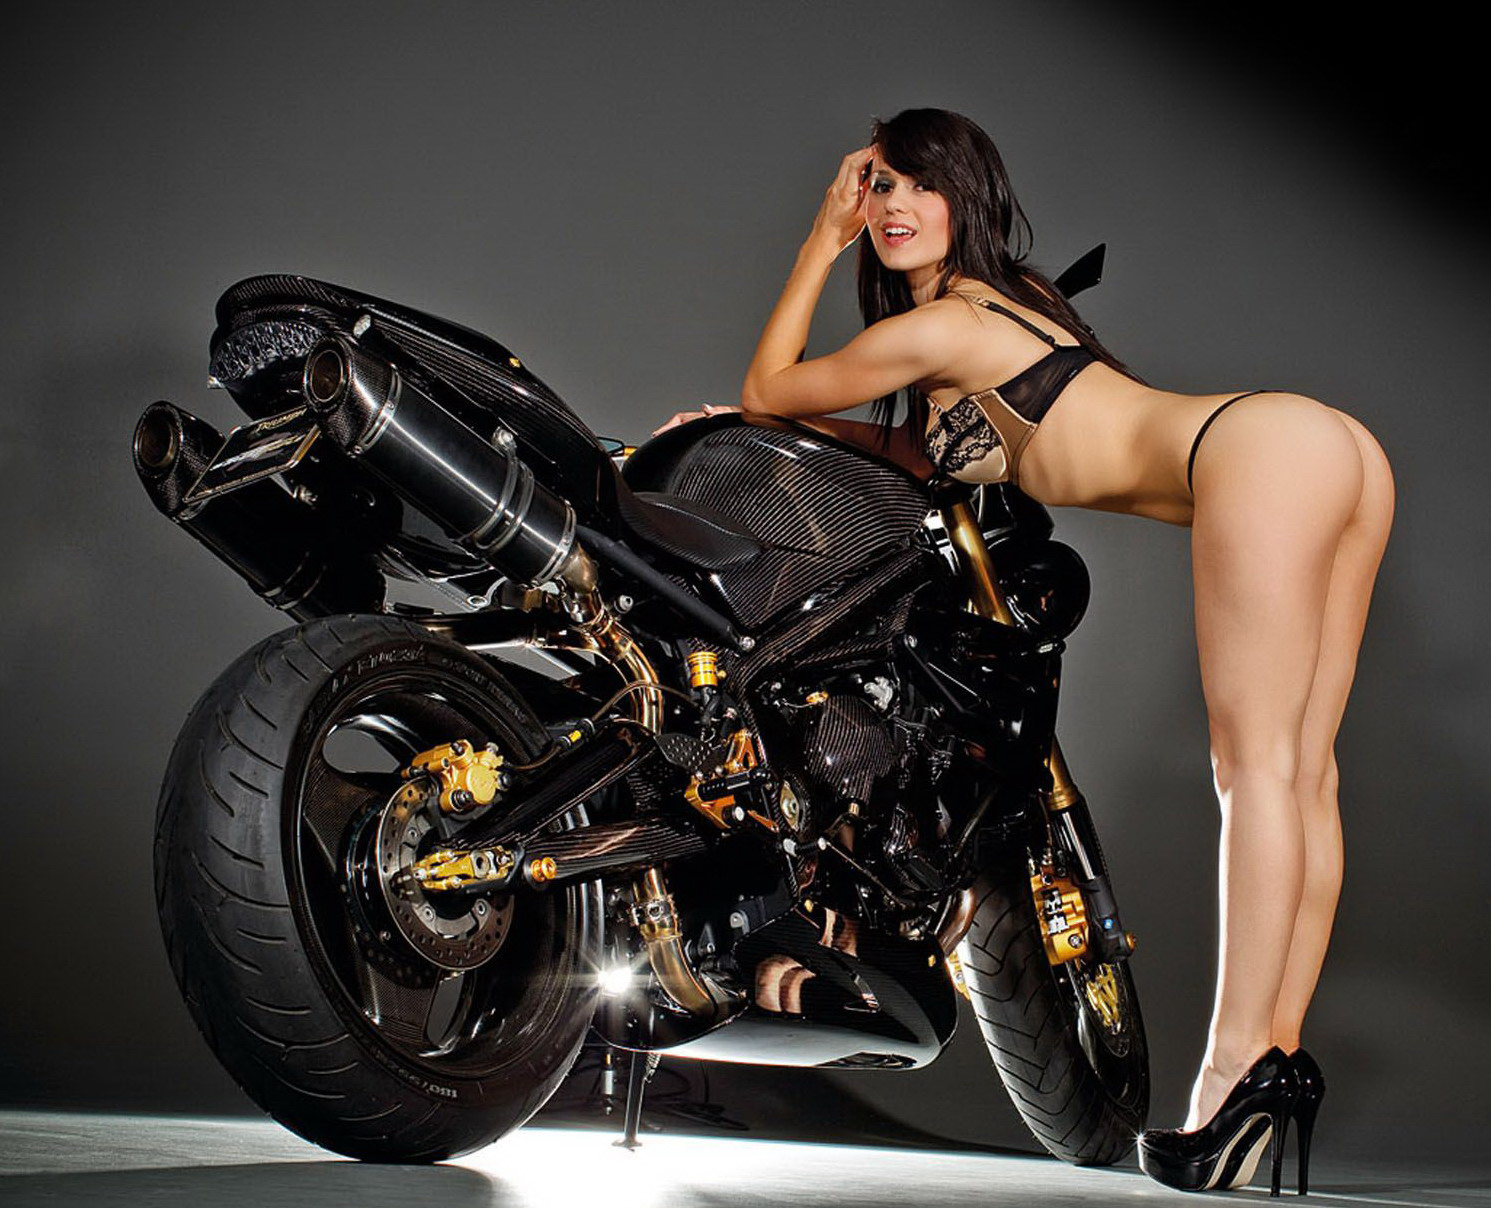 Girls On Motorcycles Pics And Comments Page 184